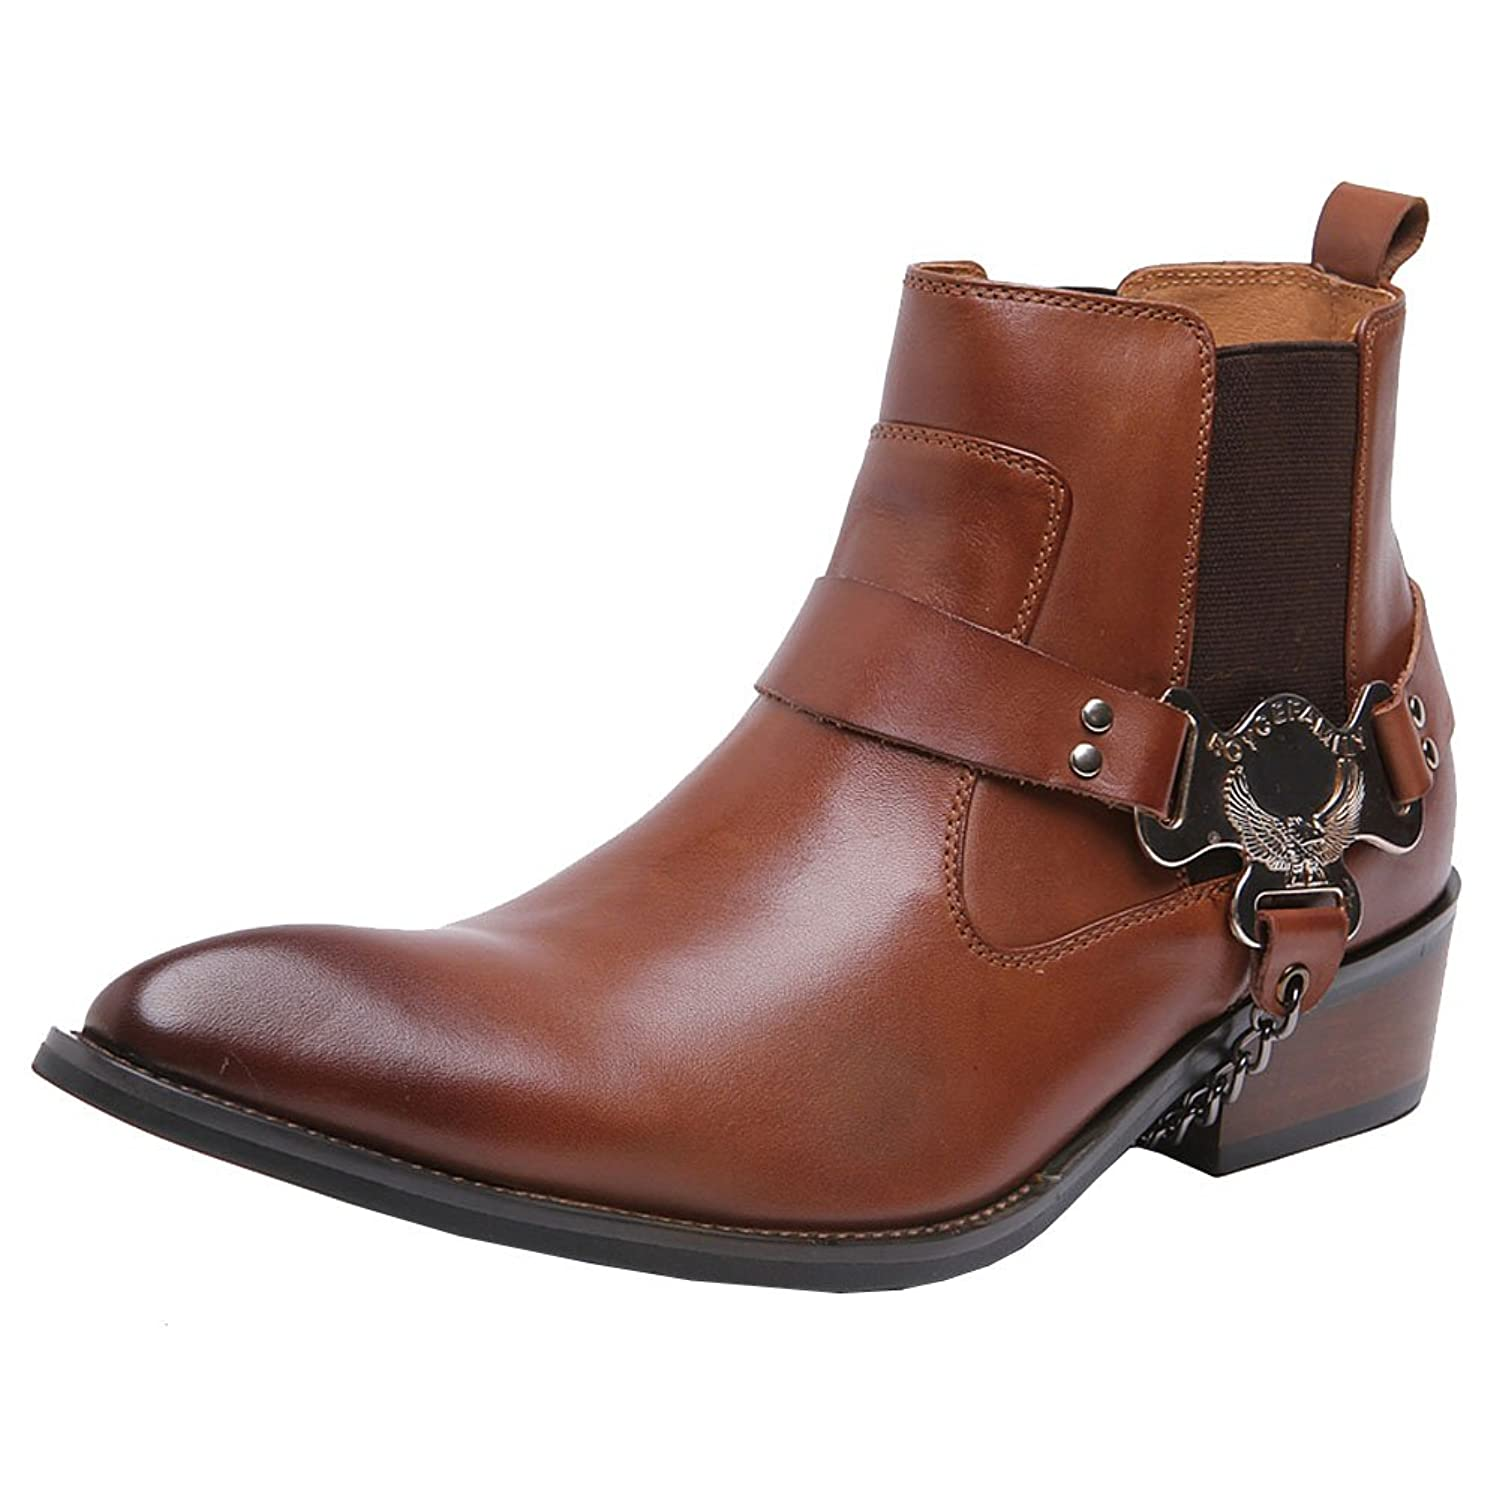 Wuf Real Leather Men's Ankle Boots Western